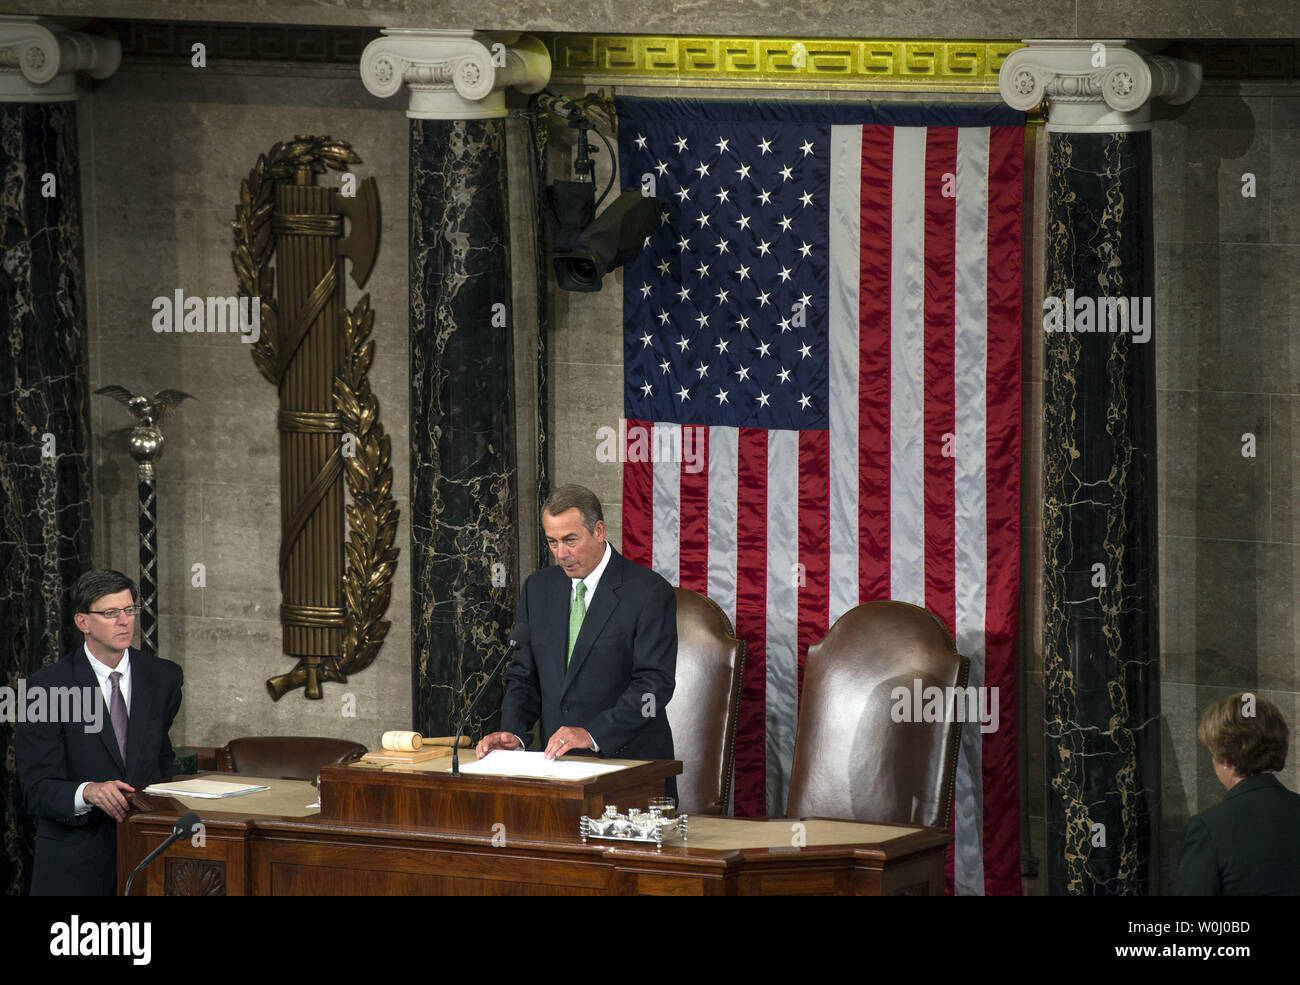 Speaker of the House John Boehner (R-OH) presides over the house floor prior to the Pope's visit, at the U.S. Capitol Building in Washington, D.C. on September 24, 2015. Boehner announced today, September 25, that he will step down as Speaker and resign from Congress at the end of October. Boehner said he decided this morning to announce his plans to resign from Congress. Photo by Kevin Dietsch/UPI - Stock Image